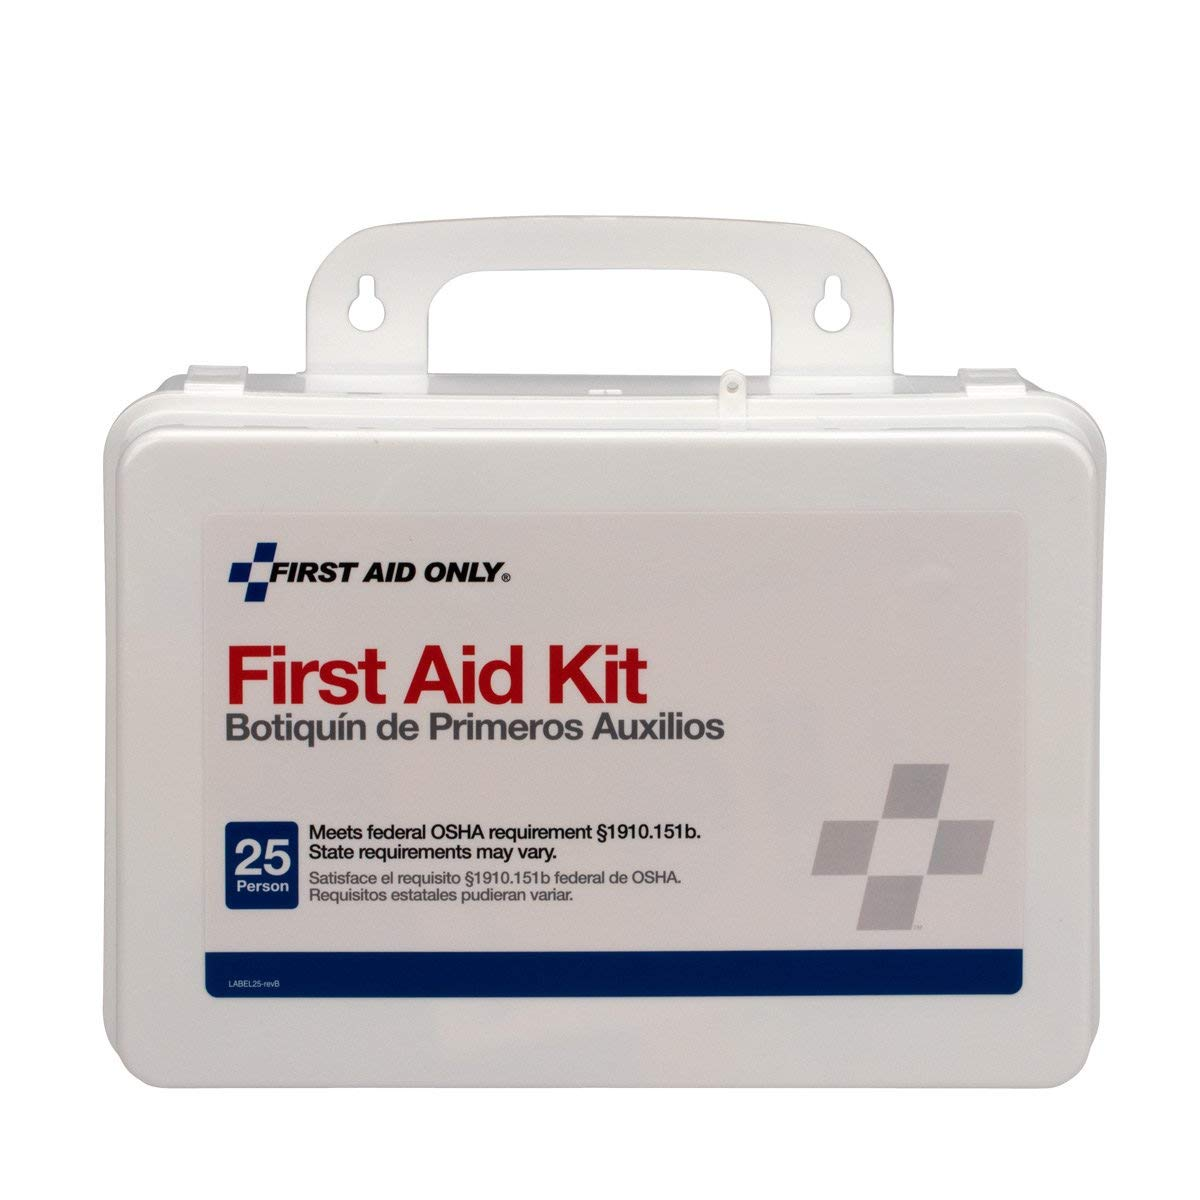 First Aid Only® Pac-Kit® 25 Person OSHA Compliant First Aid Kit